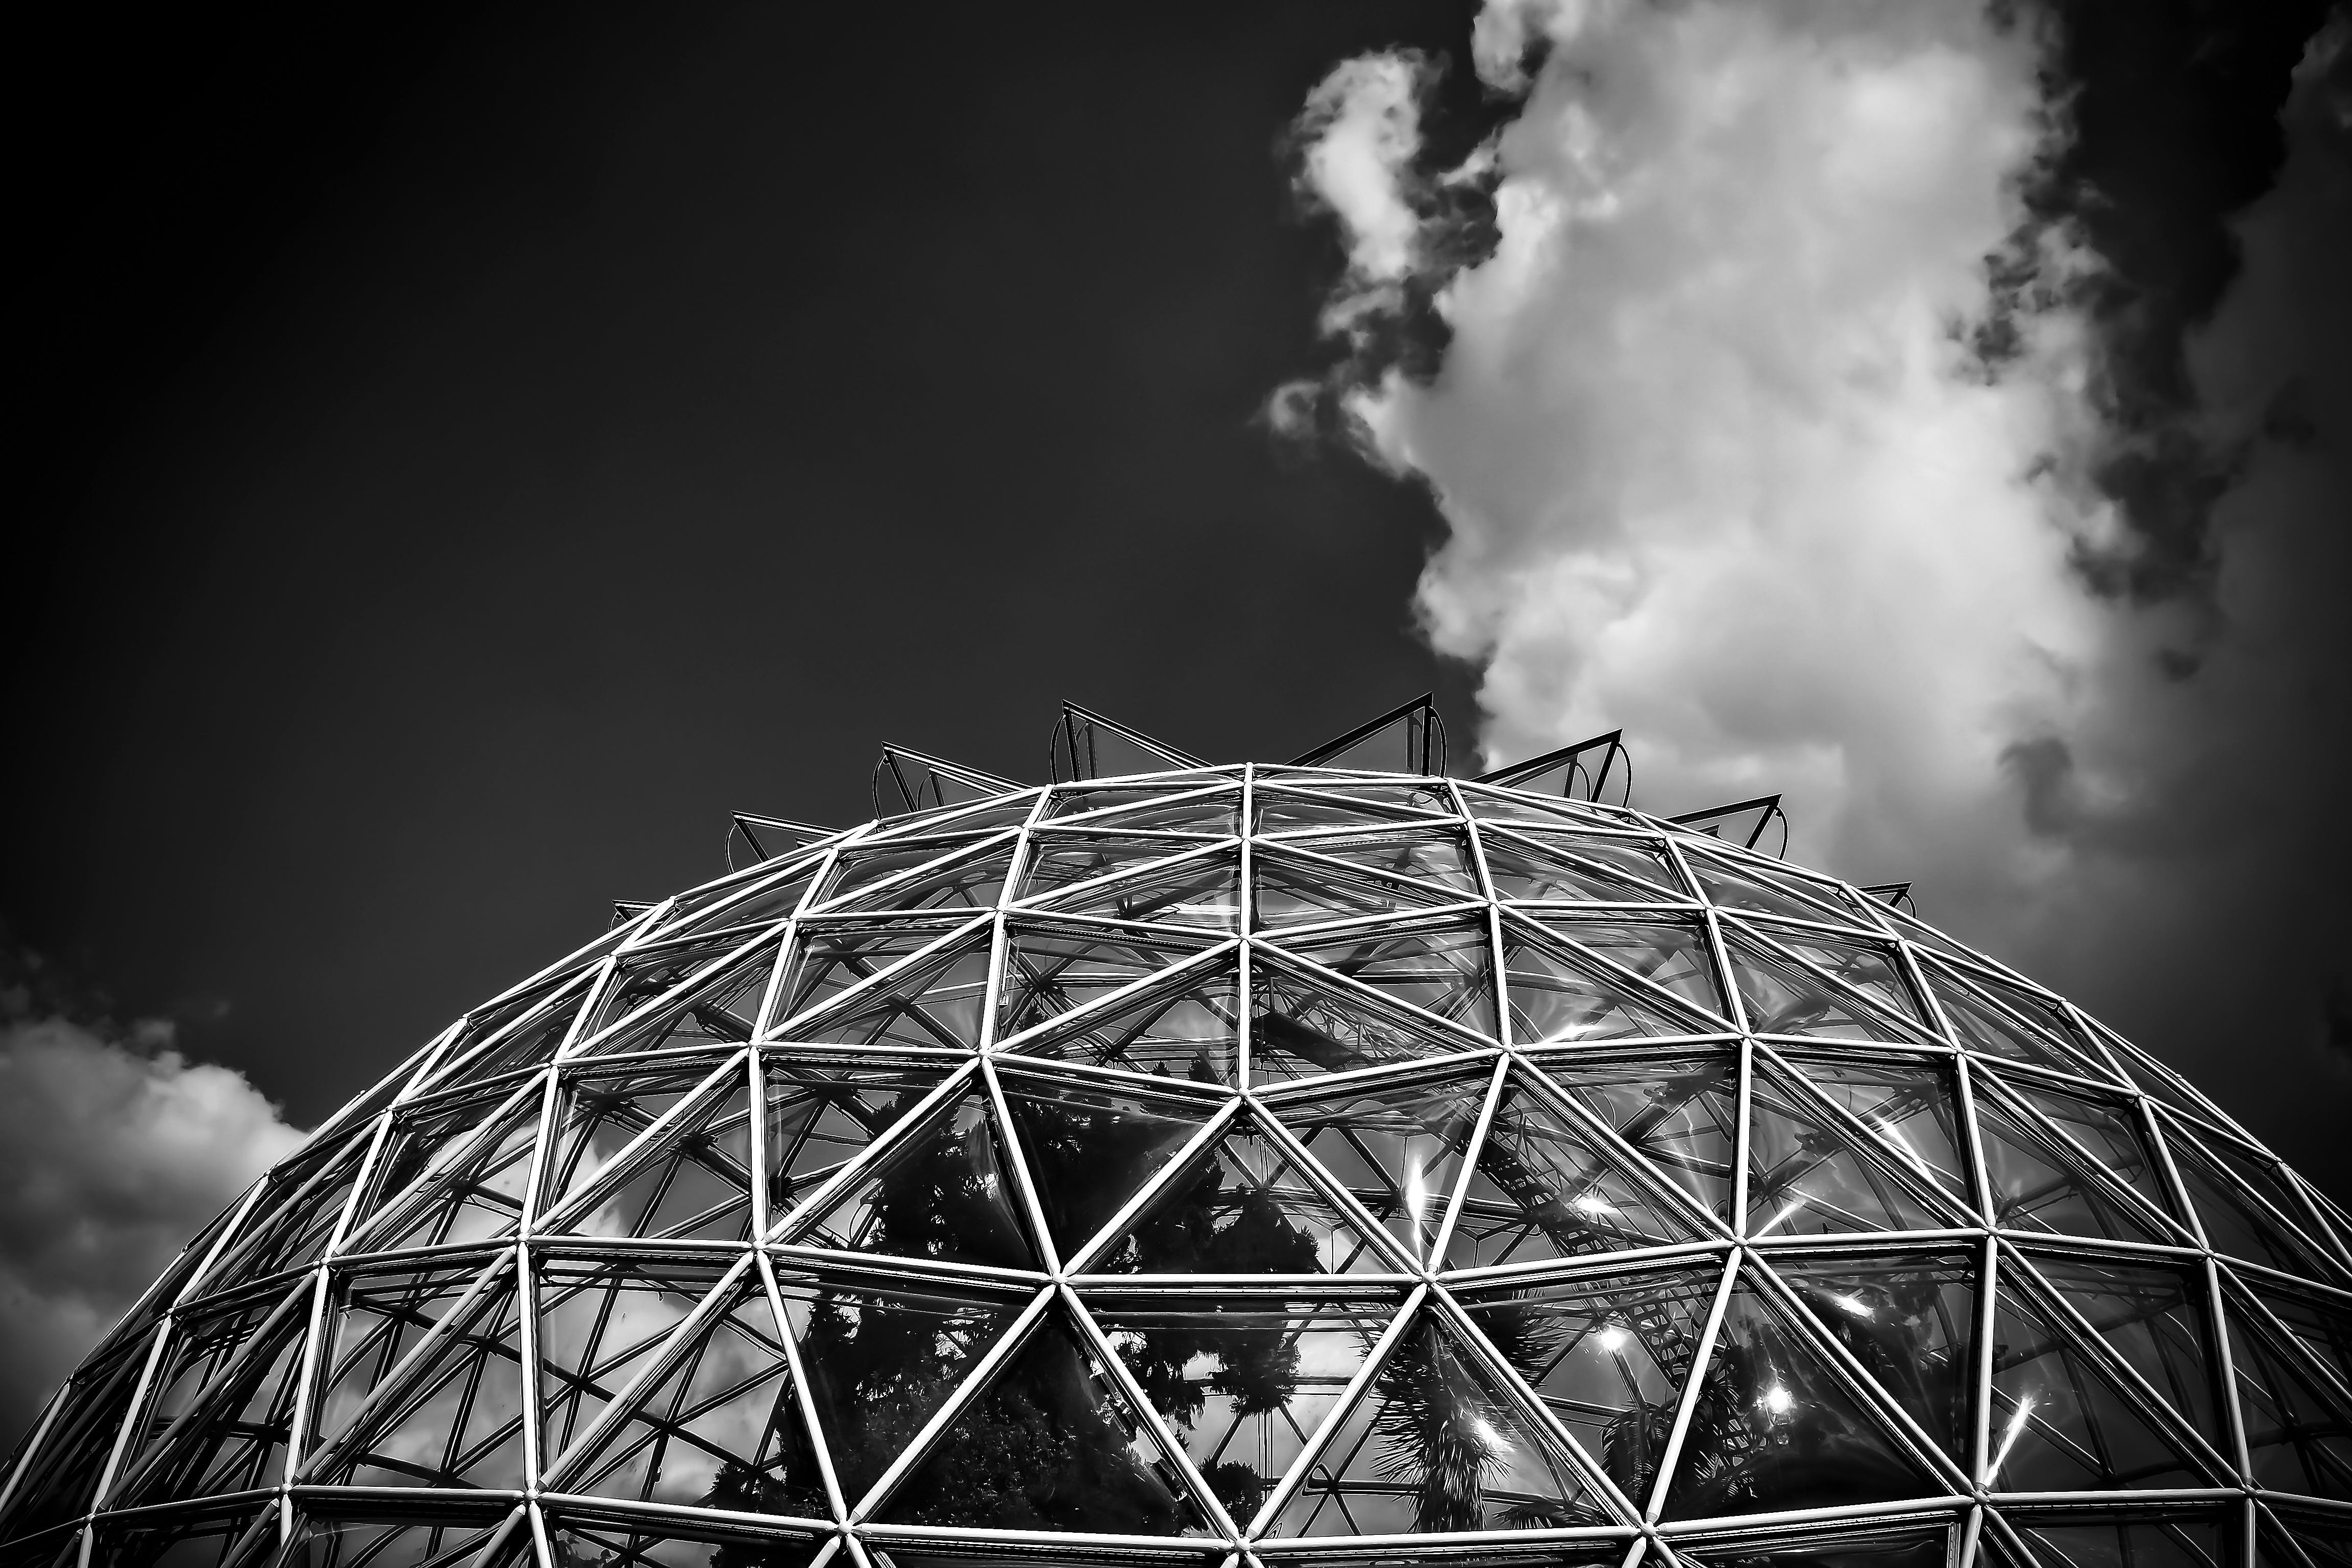 Grayscale Photography of Clear Glass Dome Building